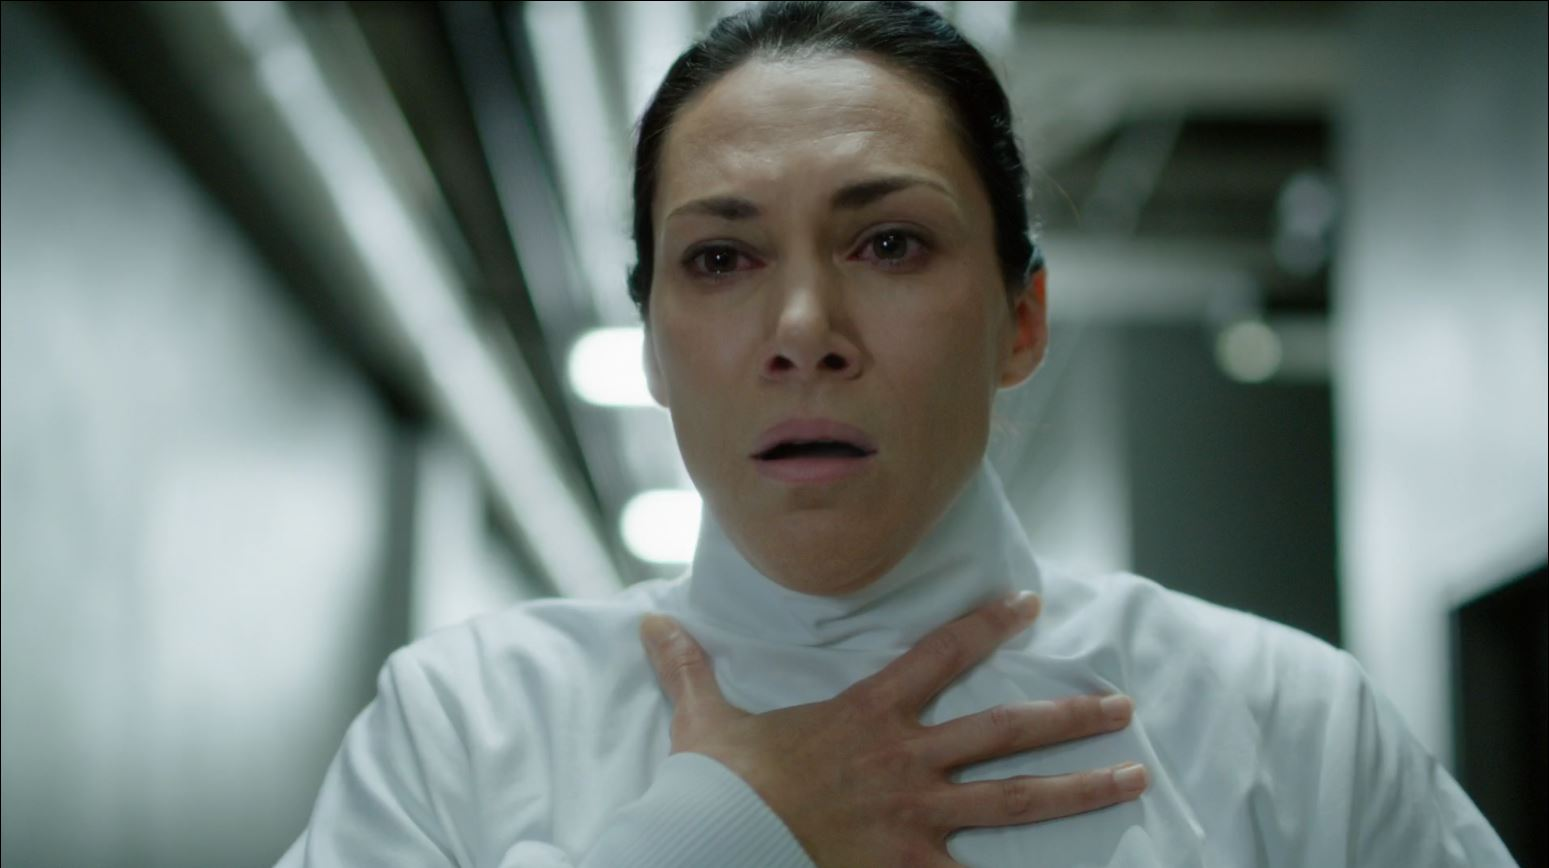 Helix - 274 - Dr. Julia Walker (Kyra Zagorsky) approached by infected Sulamani